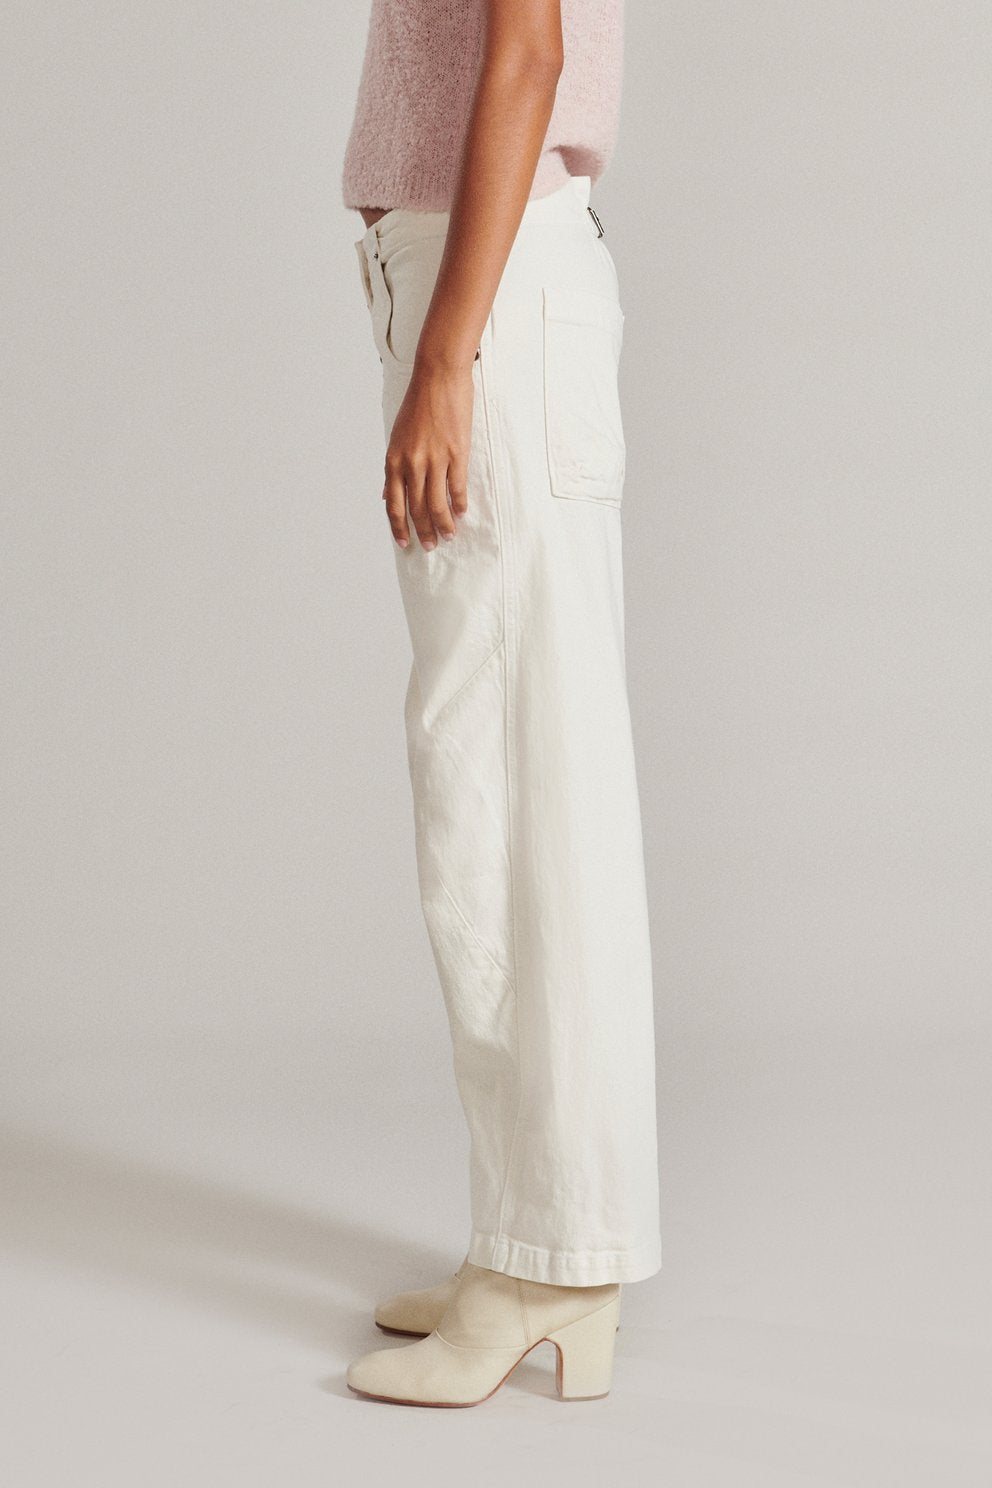 Rachel Comey - Elkin Pant (Dirty White)